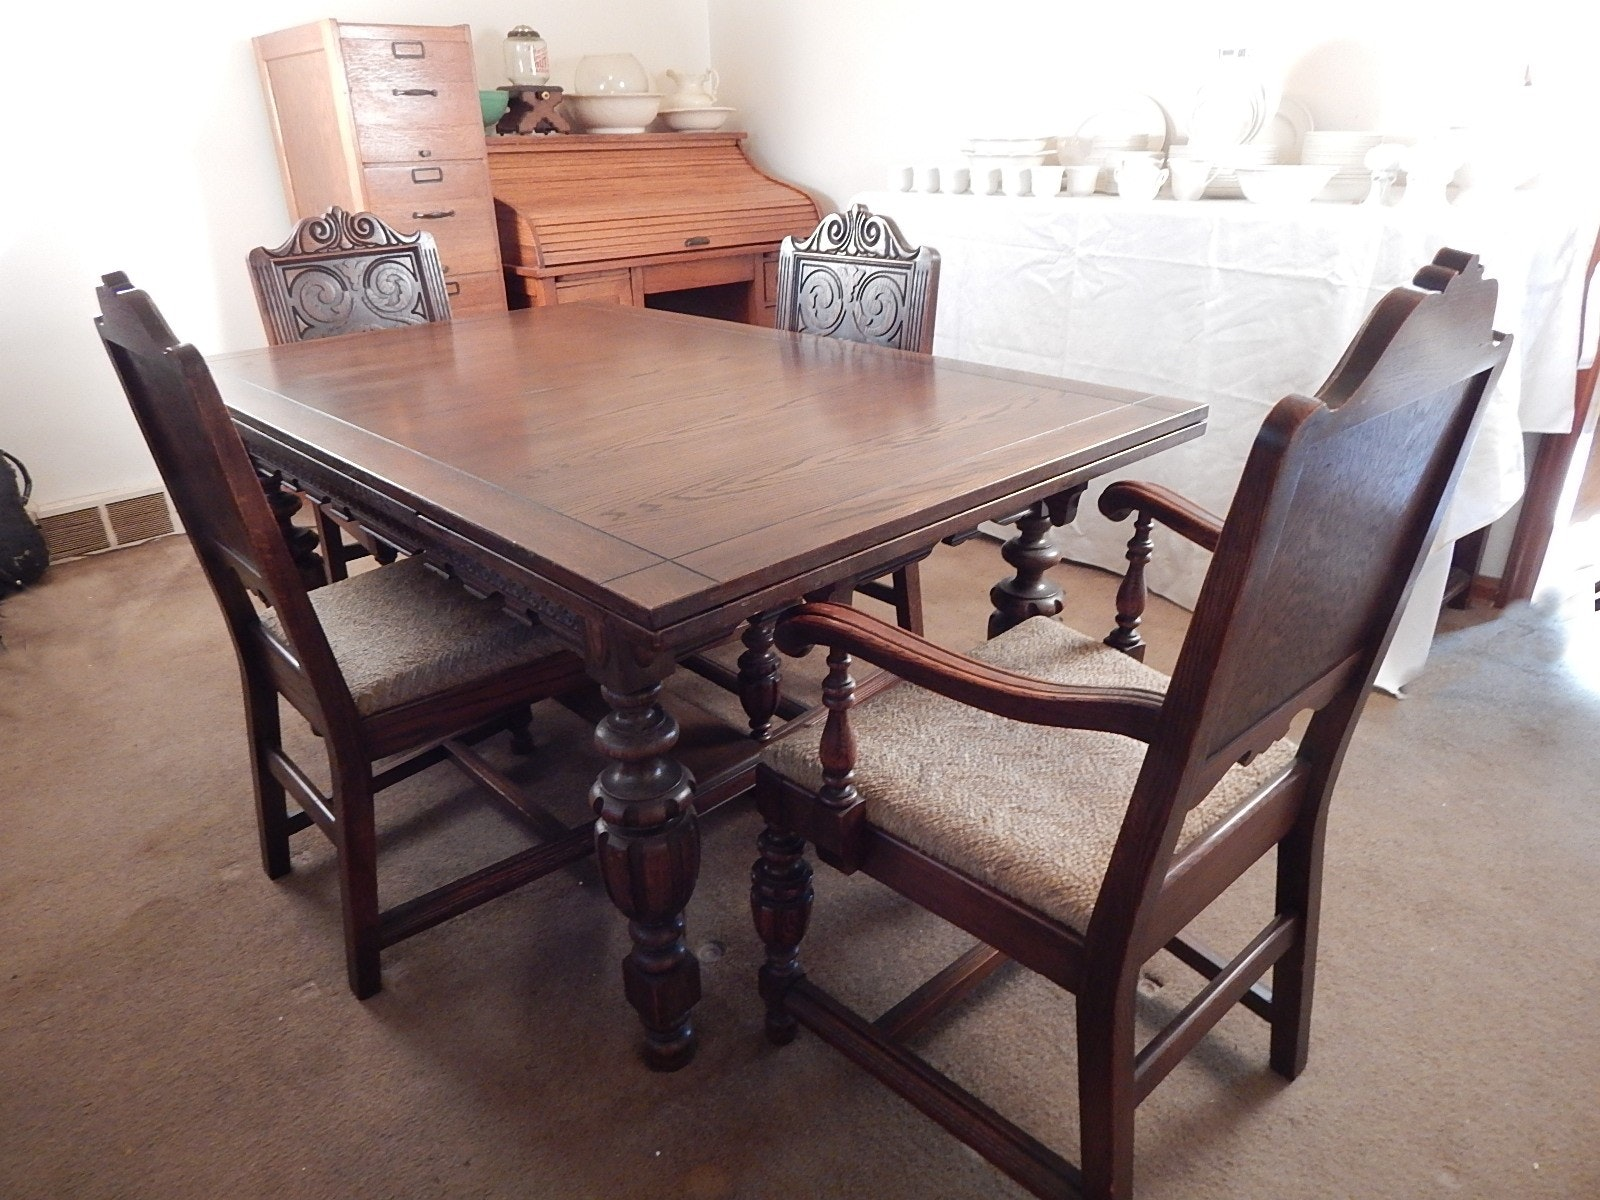 1930's jacobean revival carved oak table/chairs : ebth